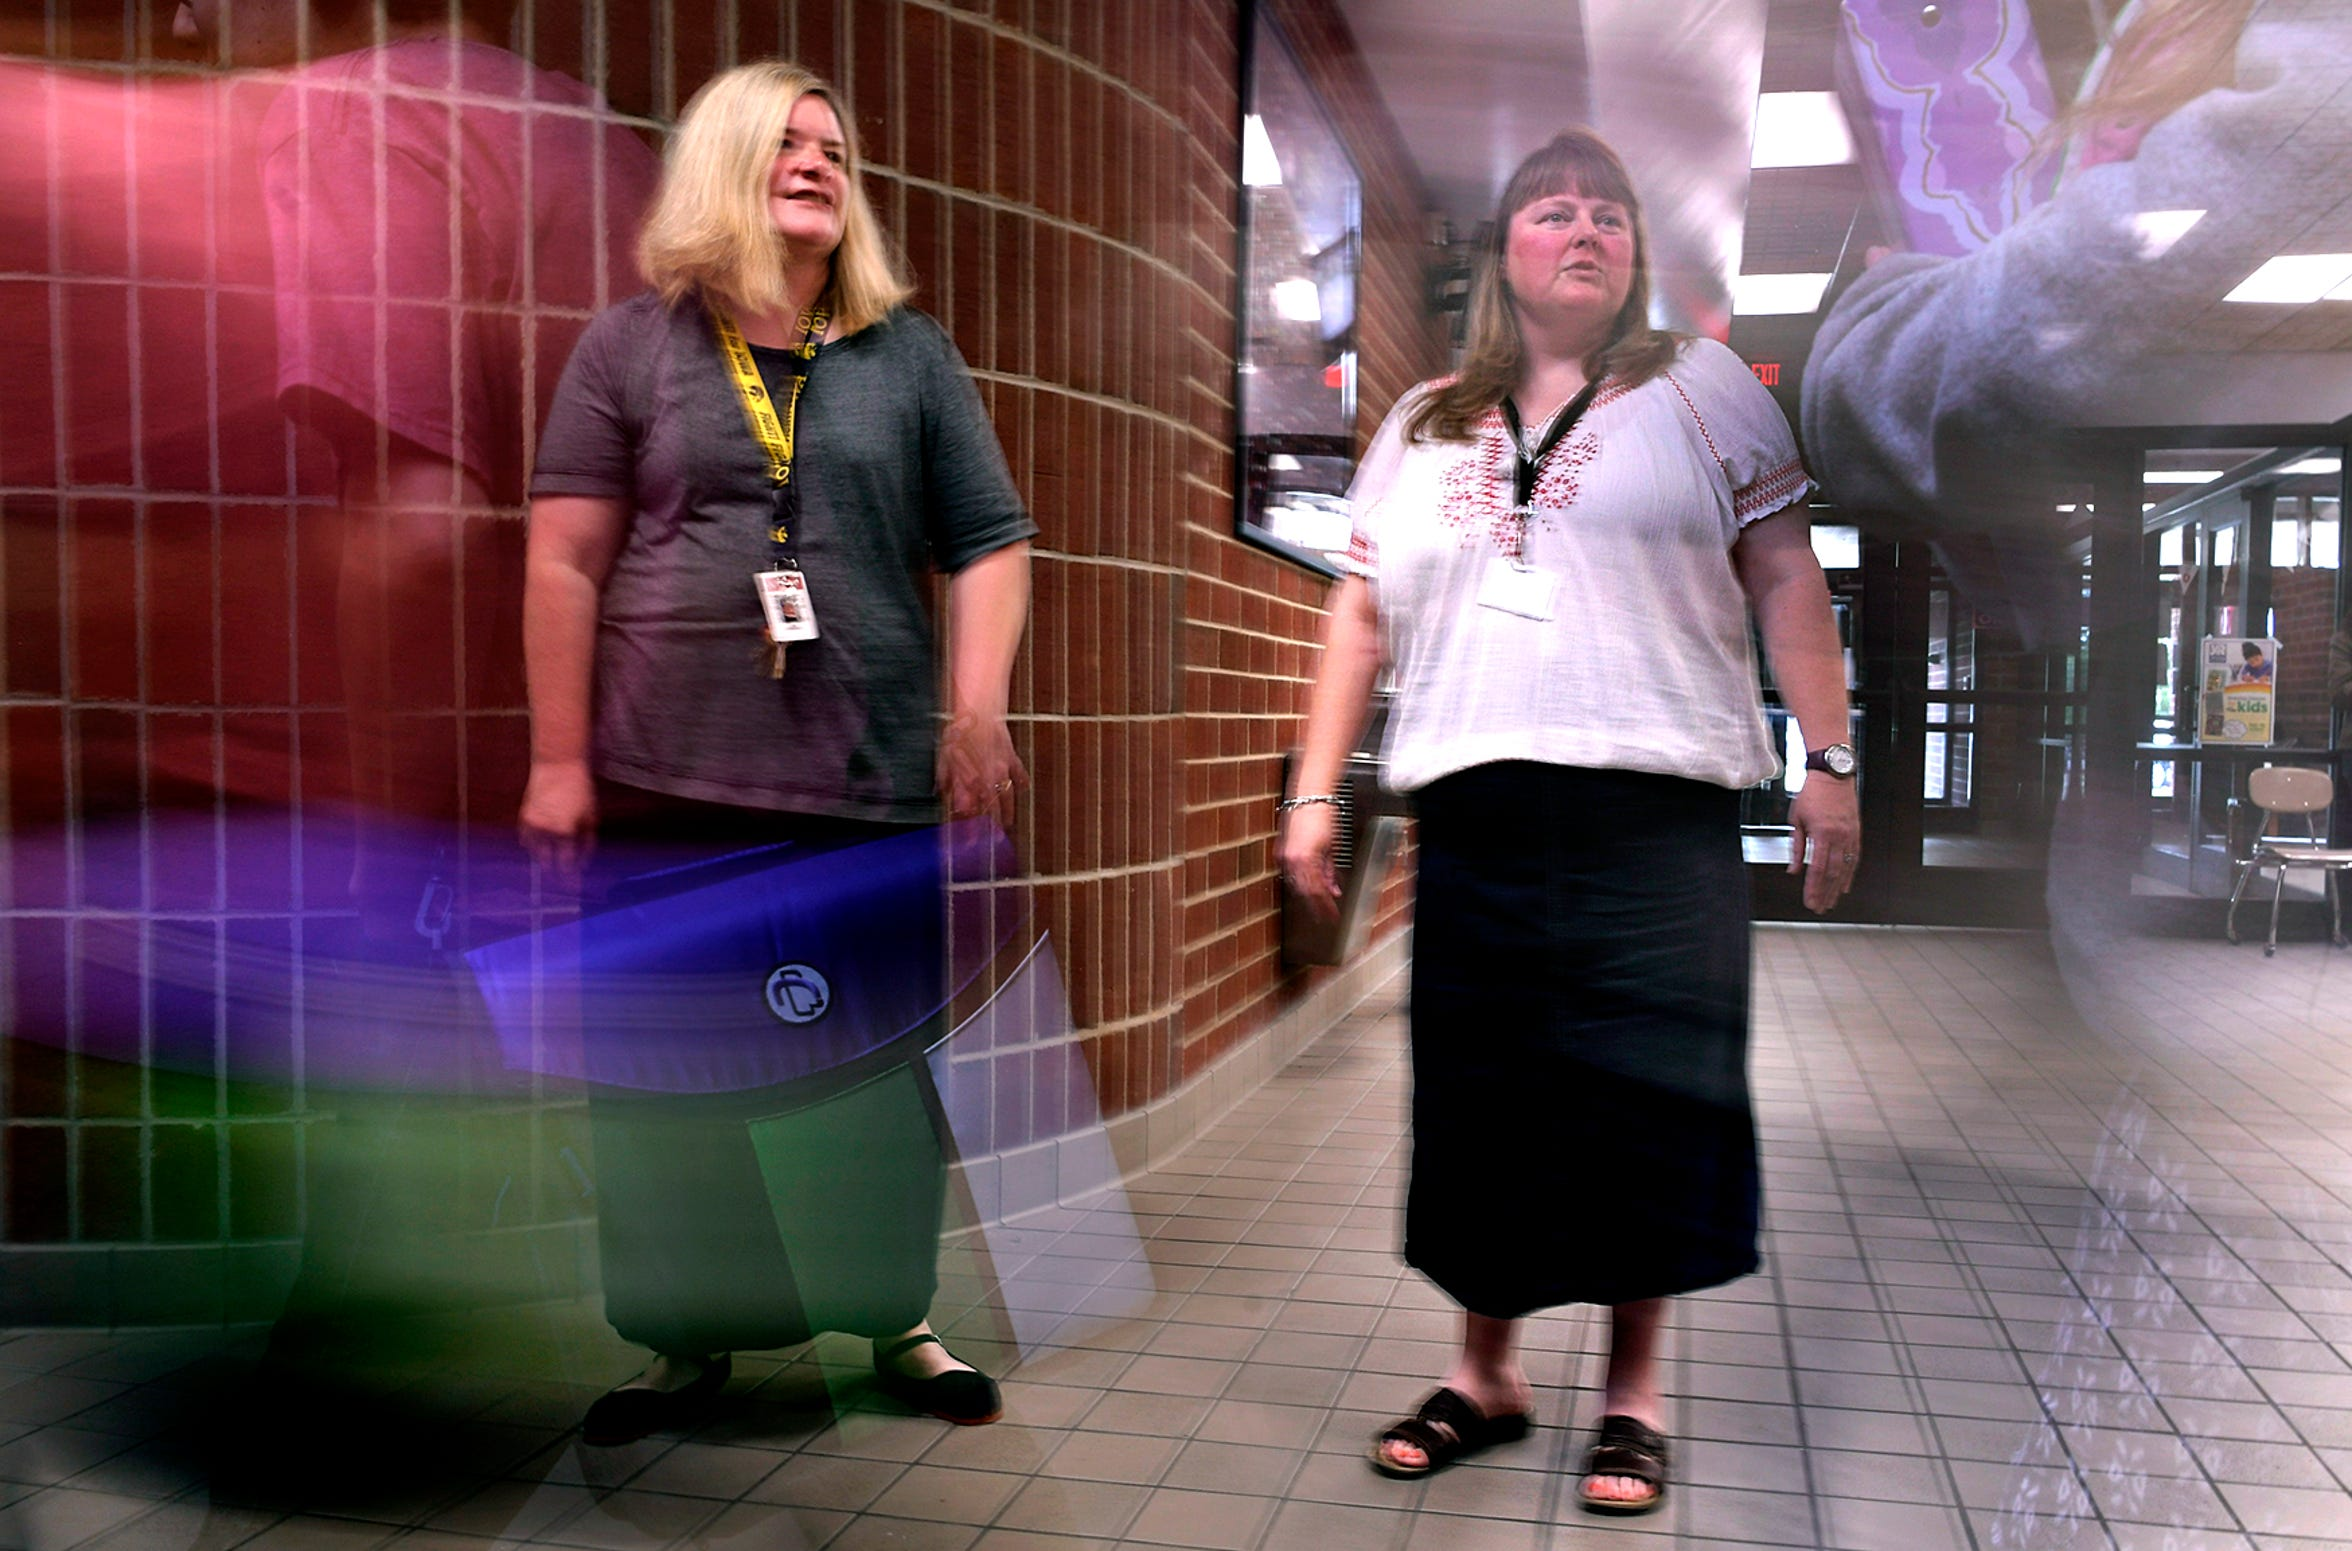 E. A. Cox Middle School guidance counselors Kim Johnson and Denise Owens stand in the hallway Aug. 7, 2018.  Maury County schools are among the first to adopt a new policy that requires school counselors to spend 80 percent of their time face to face with students.